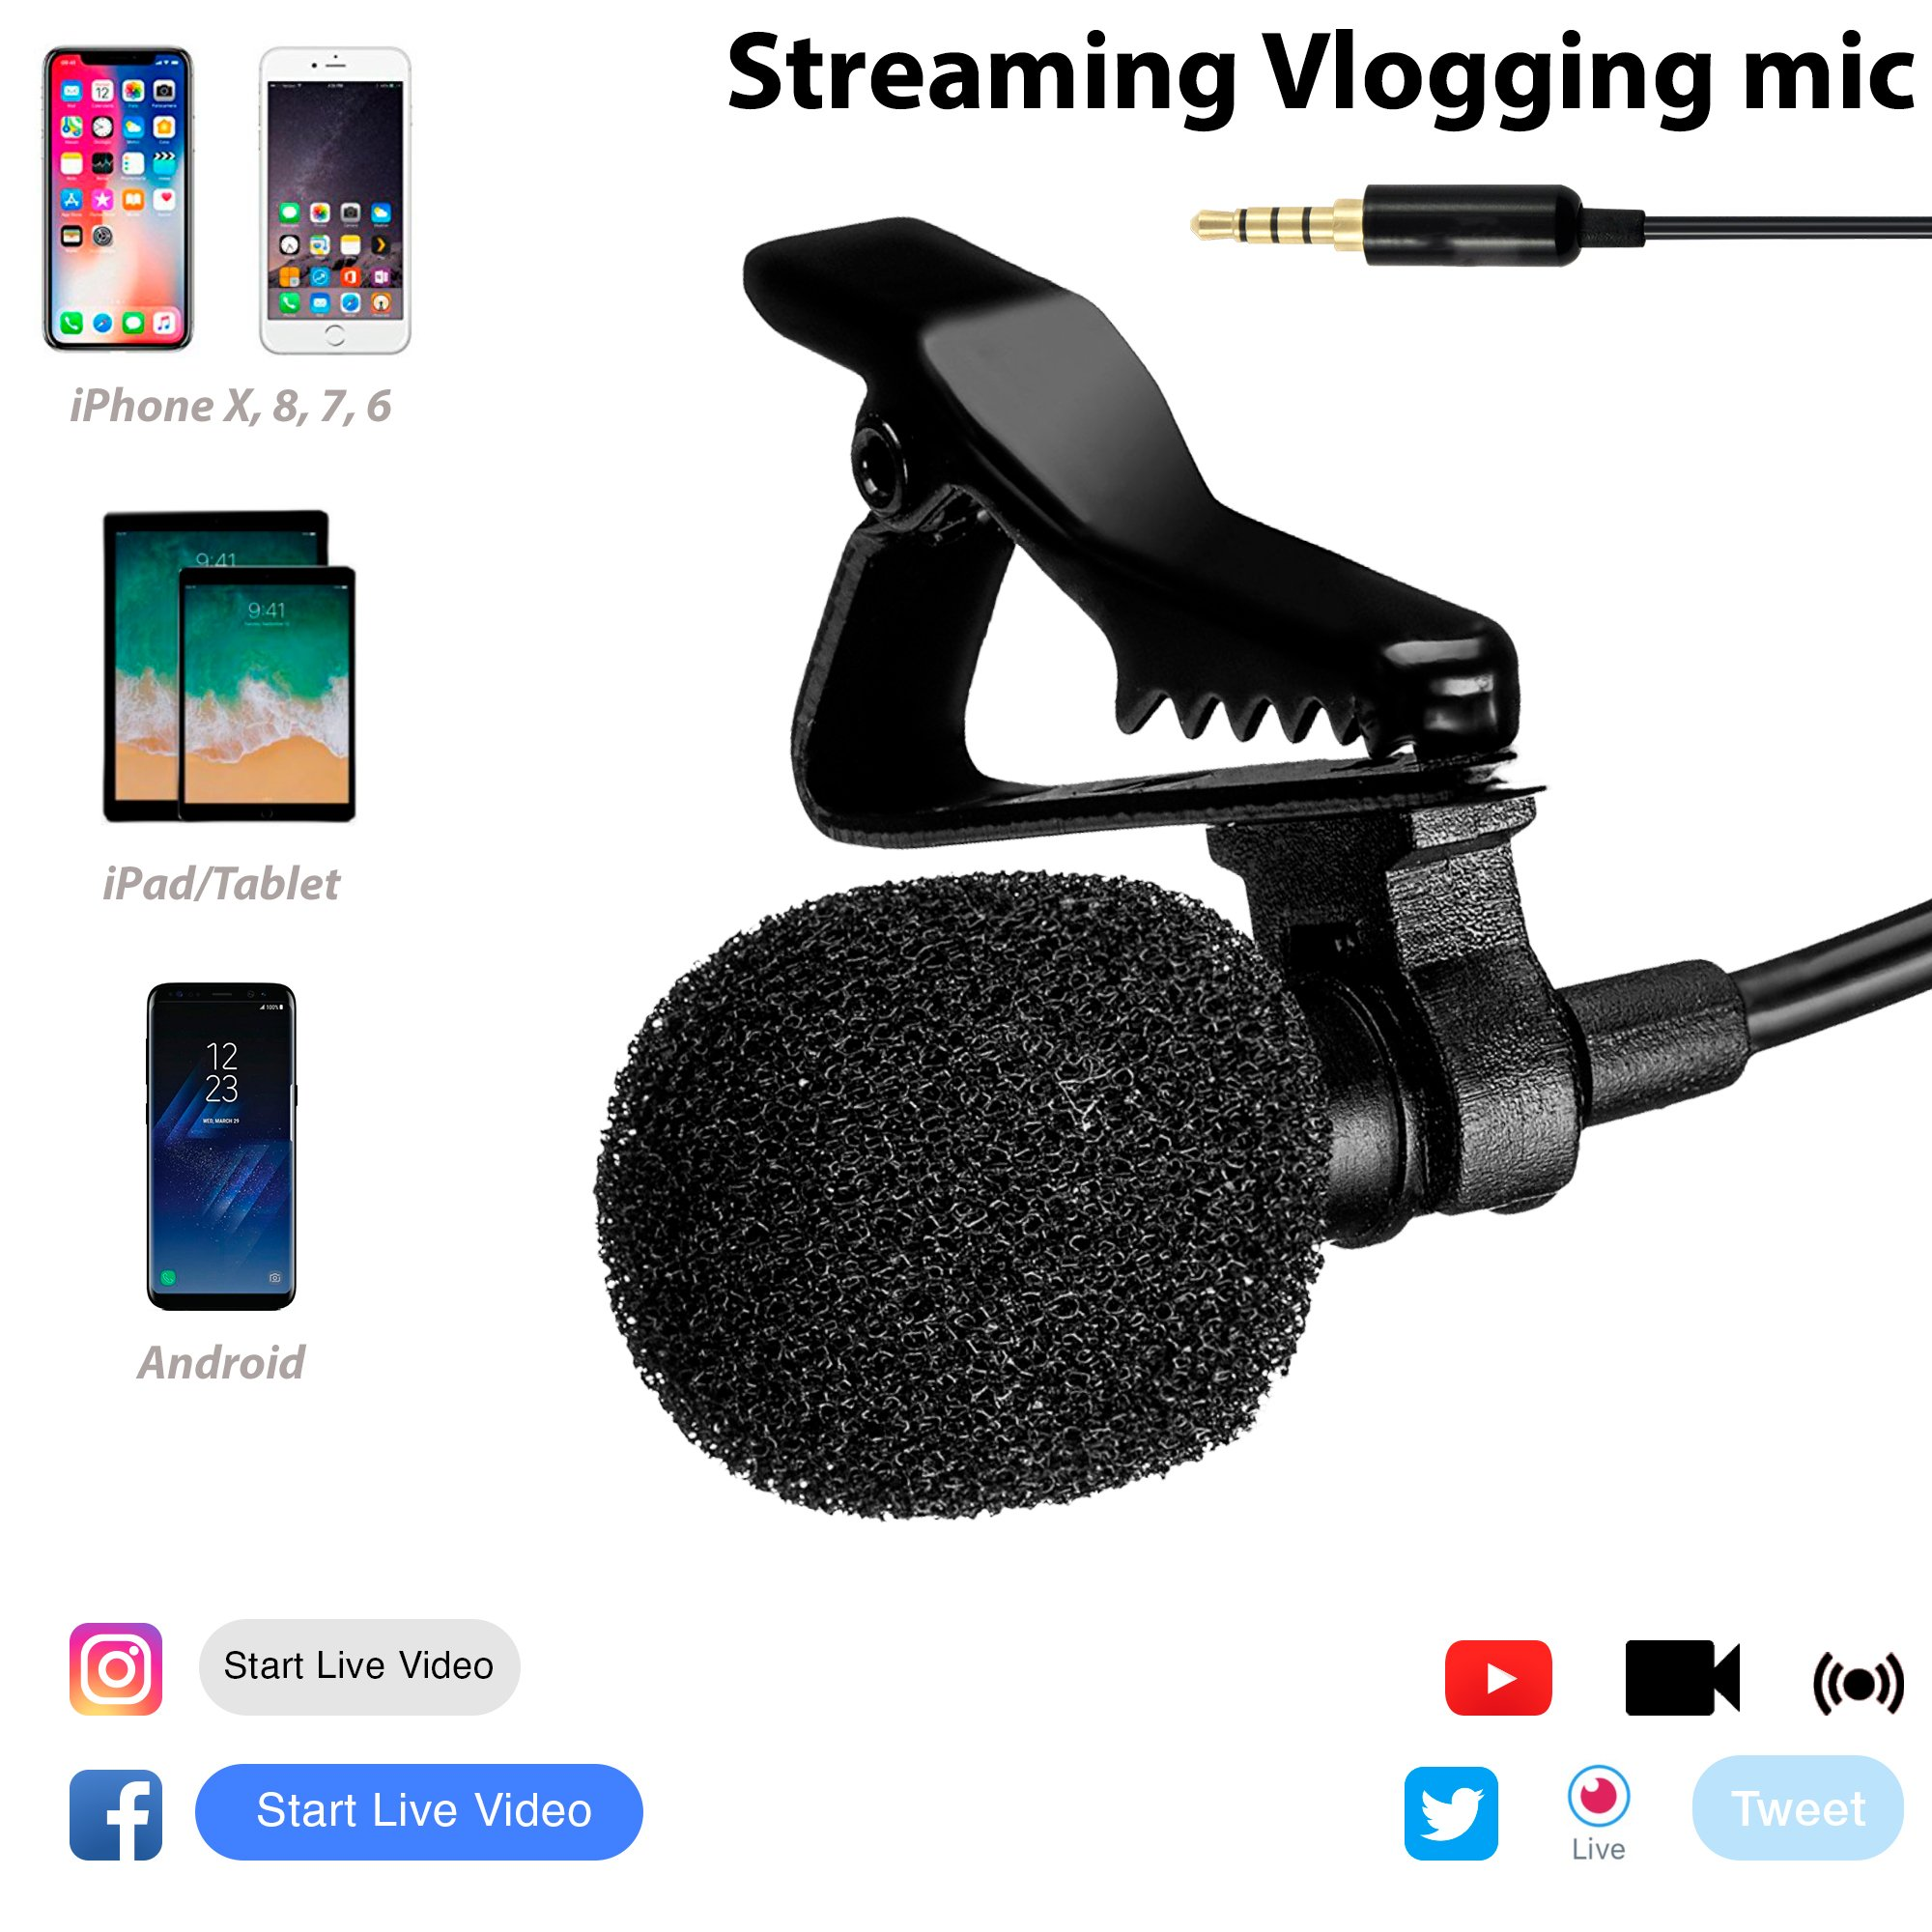 PC Streaming Mic/Microphone - Live Streaming/Stream Microphone for Podcast/Youtube/Facebook/Twitch/Interview - Vlogging/Vlog Microphone for iPhone 5 5s 5c SE 6 Plus 6s Plus 7 Plus 8 X